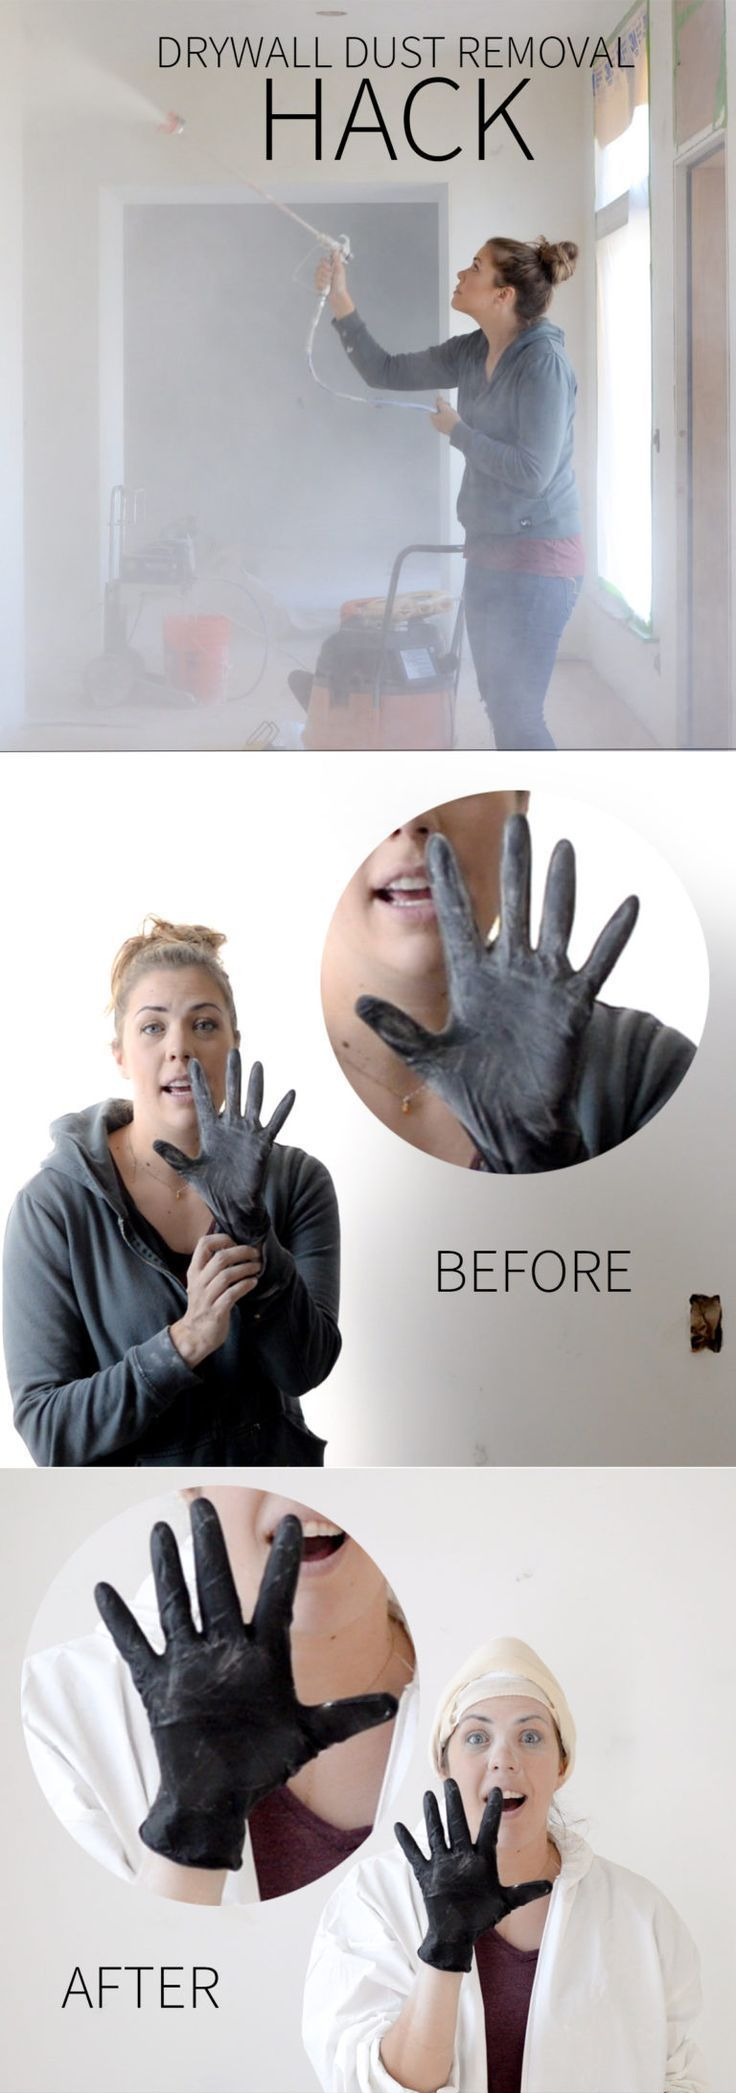 Drywall Dust Removal Hack (That Most Professionals Don't Even Know) - Vintage Revivals | Home Decor Hacks | How to install drywall #diyhomedecor #tipsandtricks #lifehacks